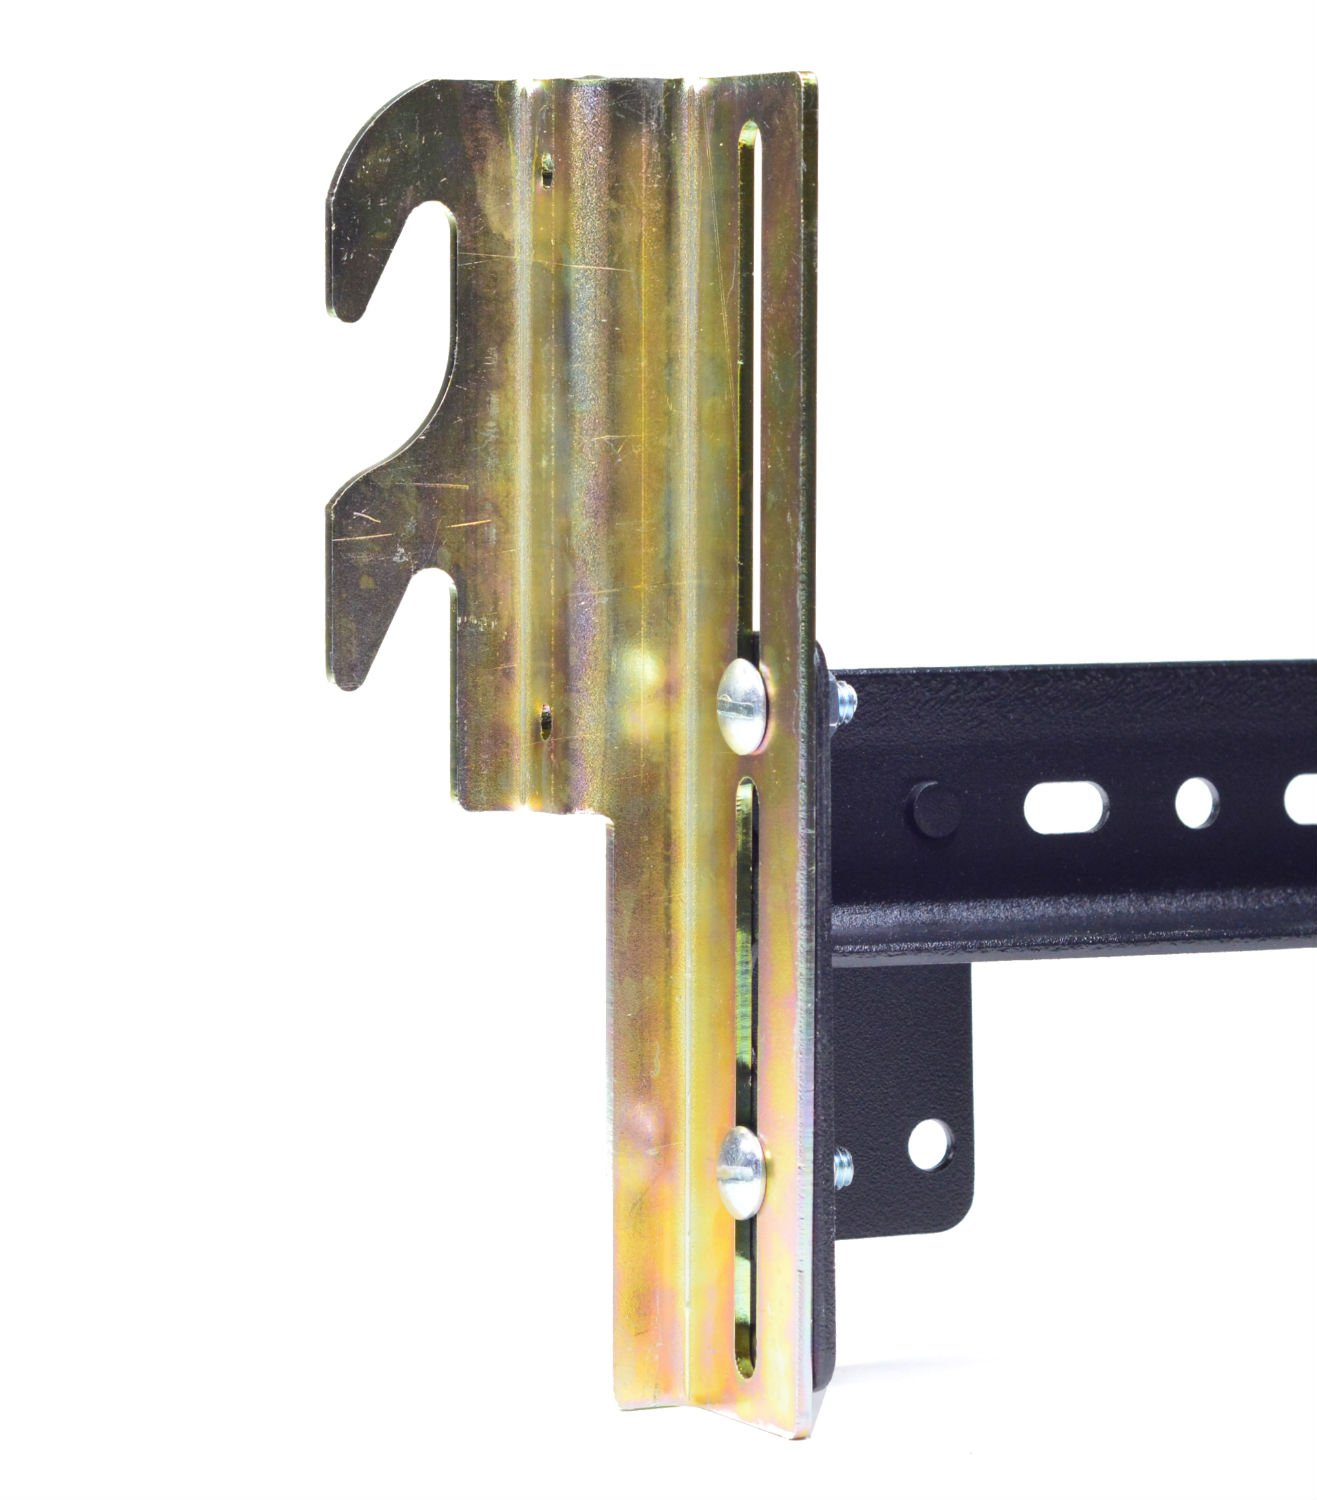 Ronin Factory Hook On Bed Frame Brackets Adapter for Headboard Extra Heavy Duty, Set of 2 Brackets with Hardware, 711 Bracket, Bolt-On to Hook-On Conversion by Ronin Factory